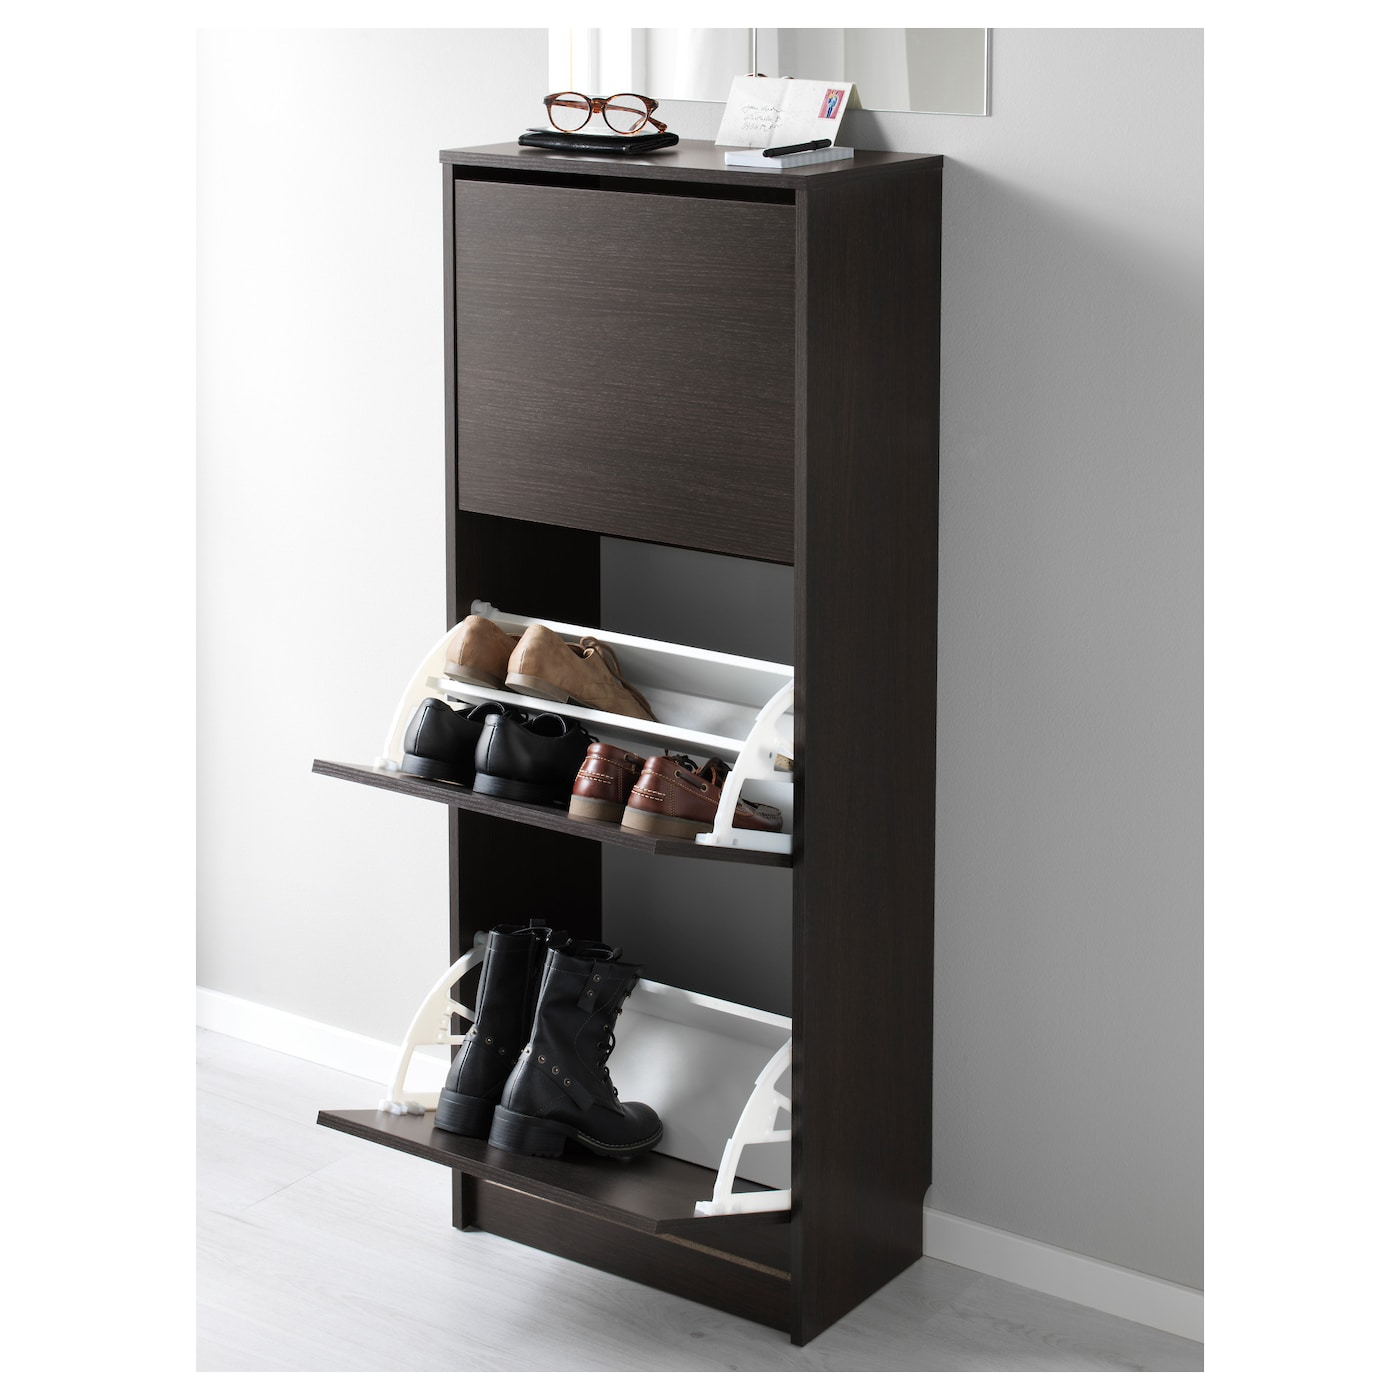 bissa shoe cabinet with 3 compartments black brown 49x135 cm ikea. Black Bedroom Furniture Sets. Home Design Ideas